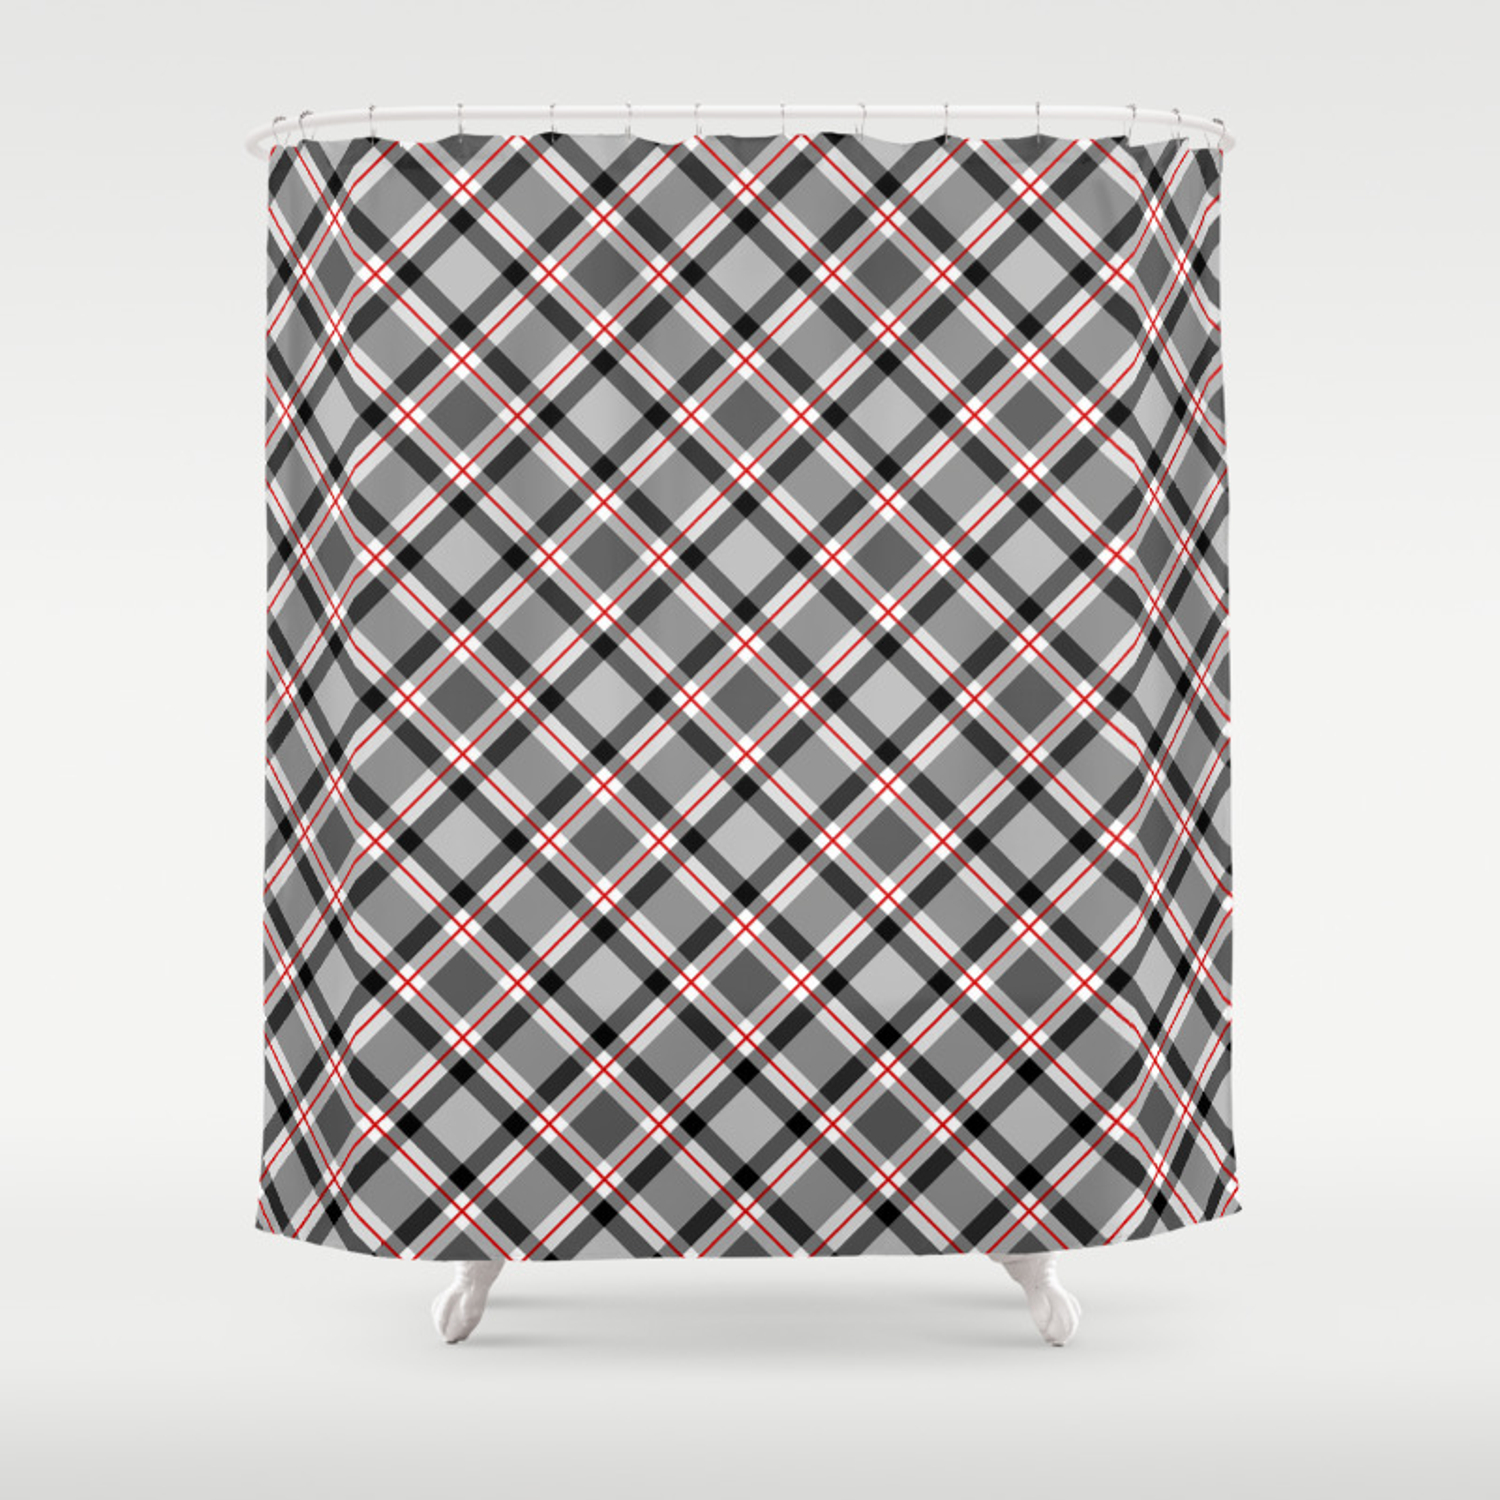 Large Modern Plaid Black White Gray And Red Shower Curtain